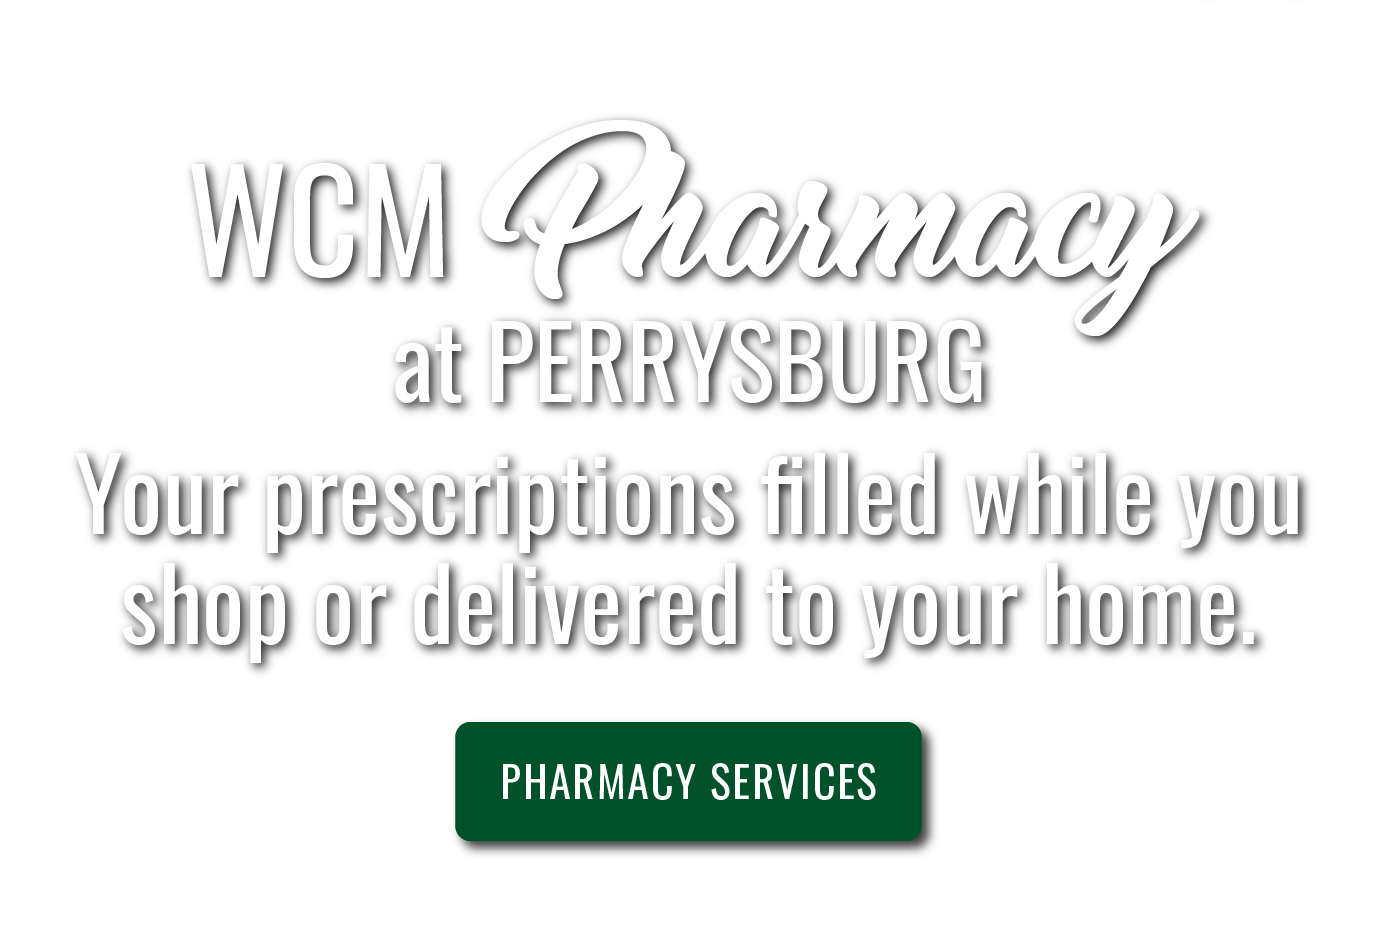 WCM Pharmacy at Perrysburg. Your prescriptions filled while you shop or delivered to your home.